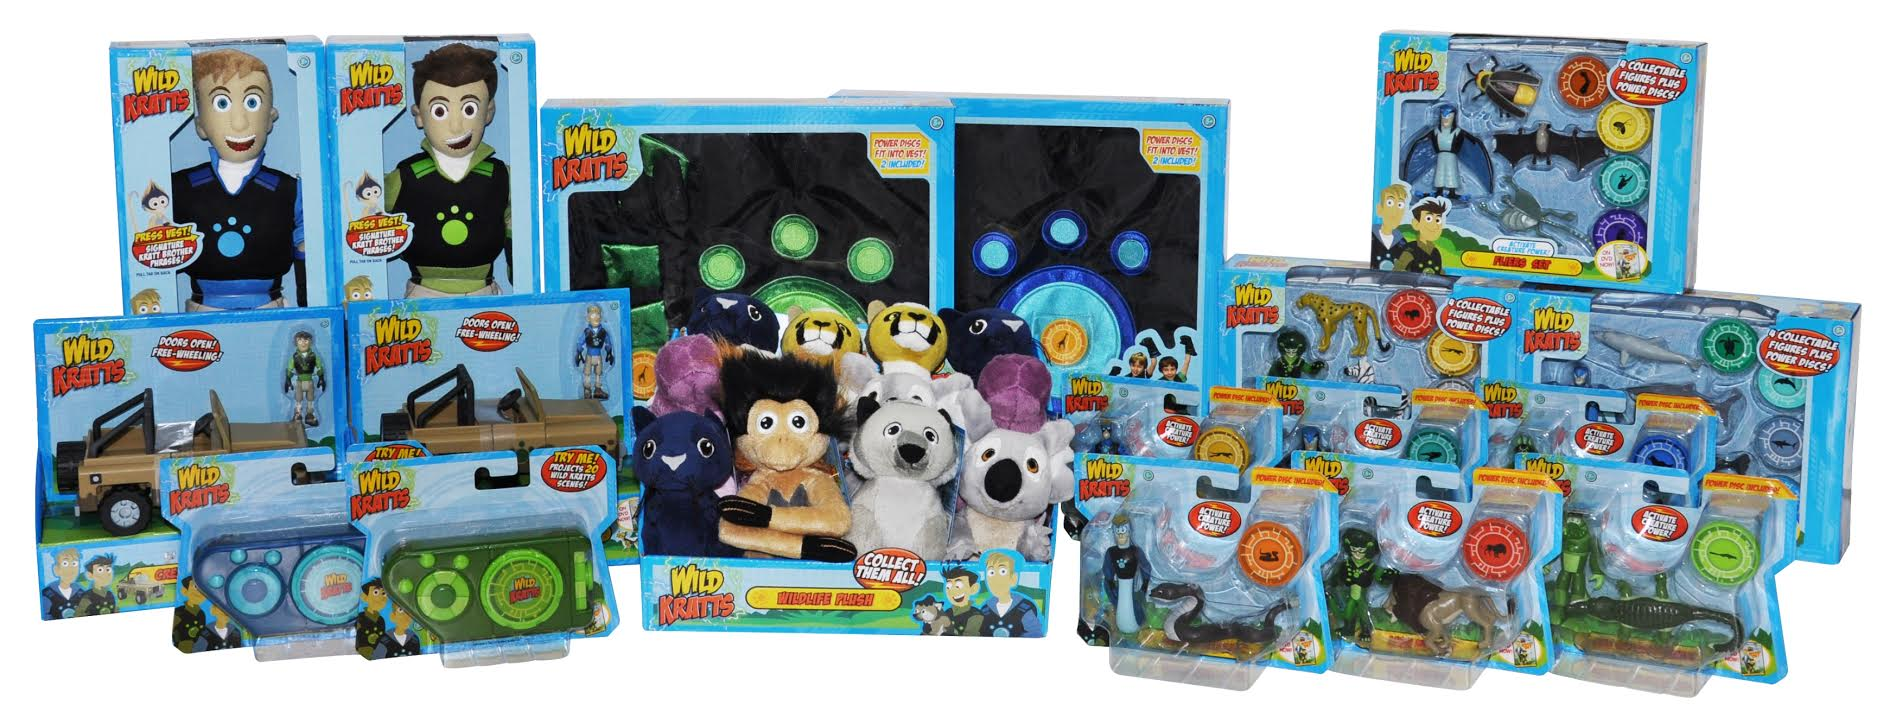 Wild Kratts toy line